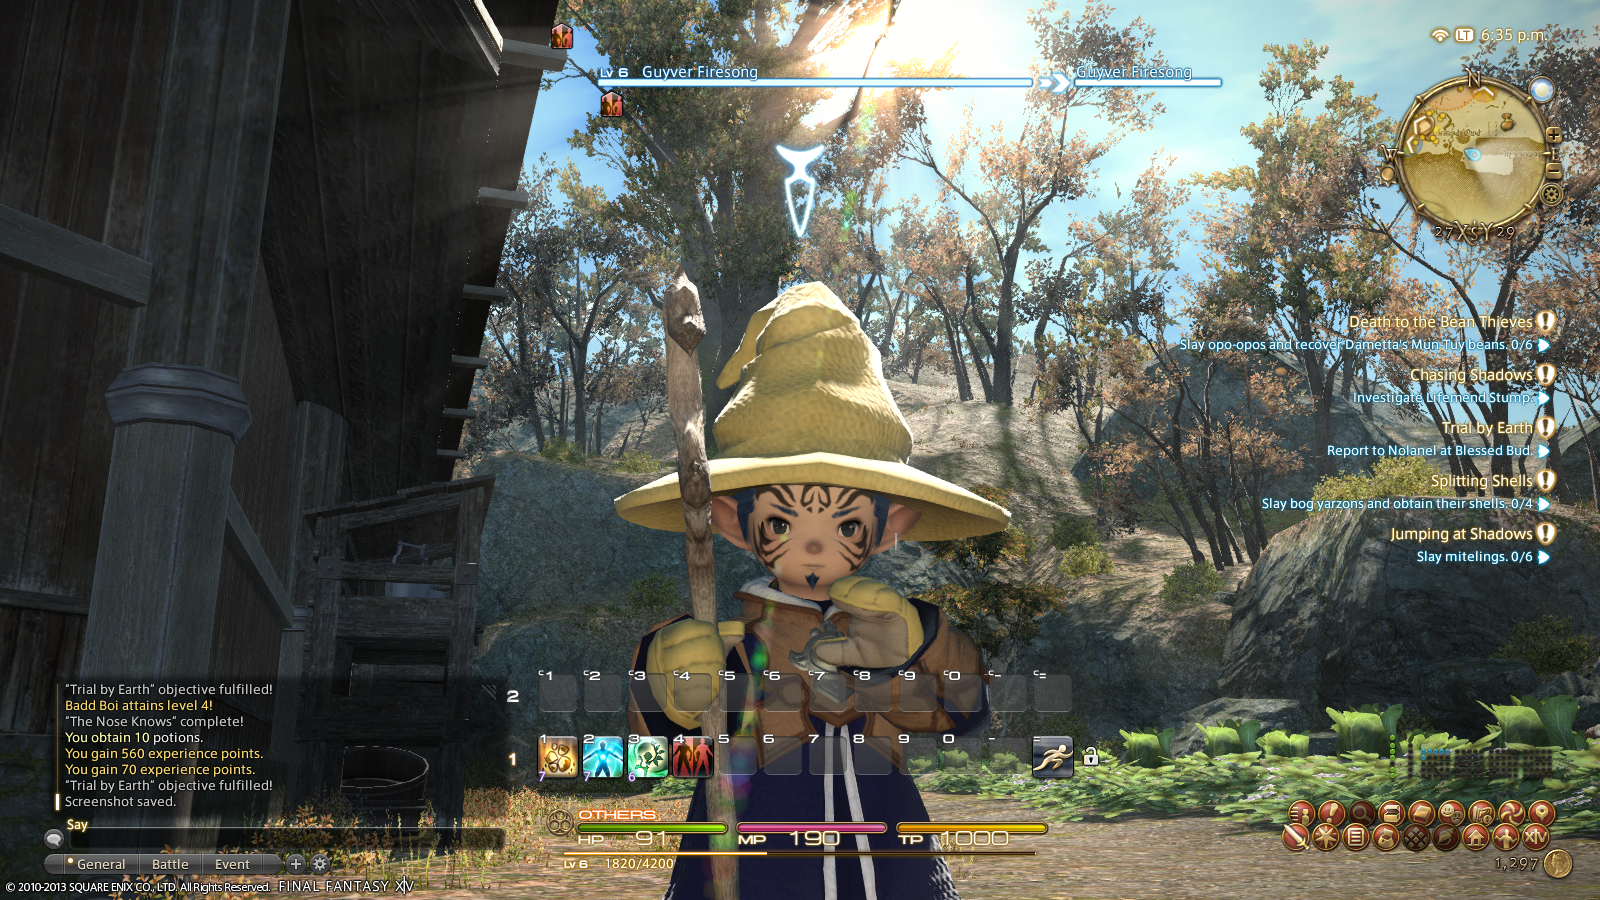 guyverarmor ffxiv cute fantastic awesome picture this comment cheesecake phase contest wanted just